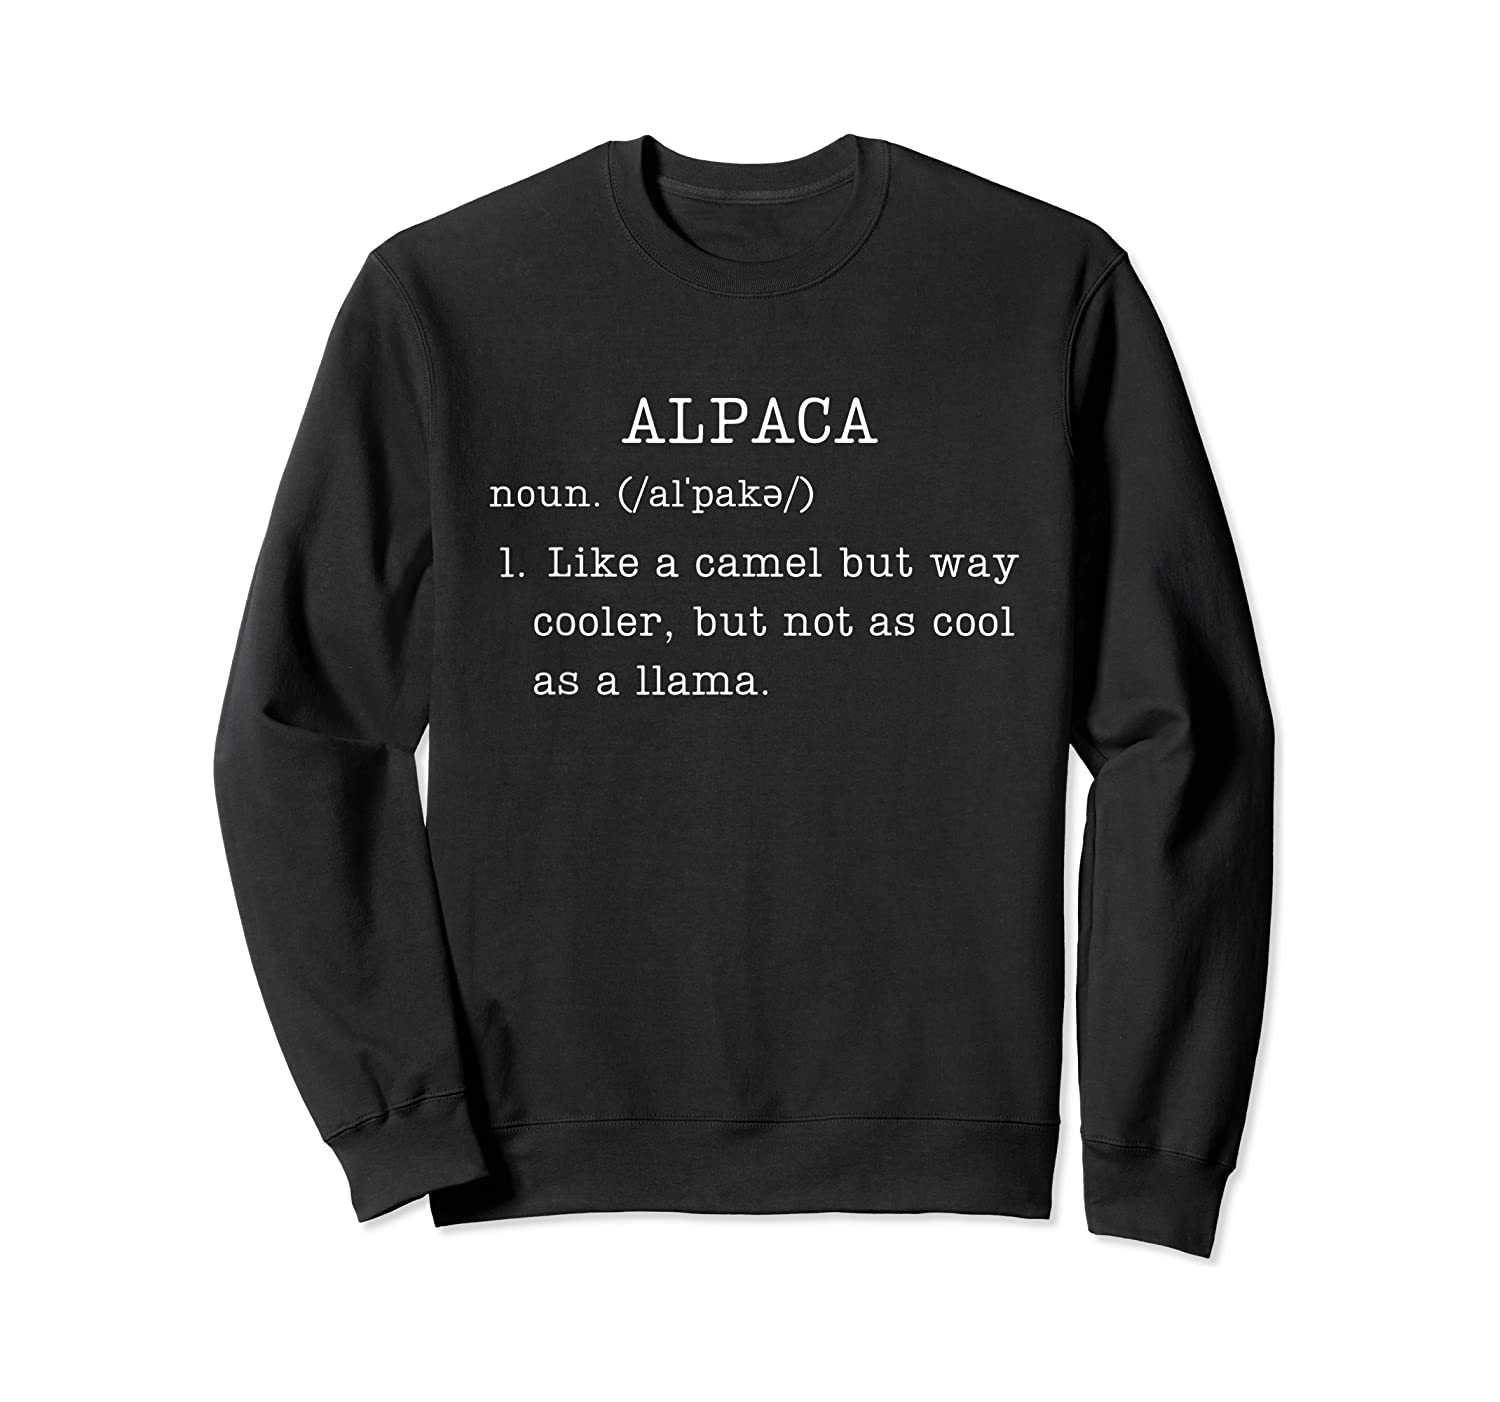 Funny Alpaca Gifts Dictionary Definition Humor Animal Lovers T-shirt Crewneck Sweater